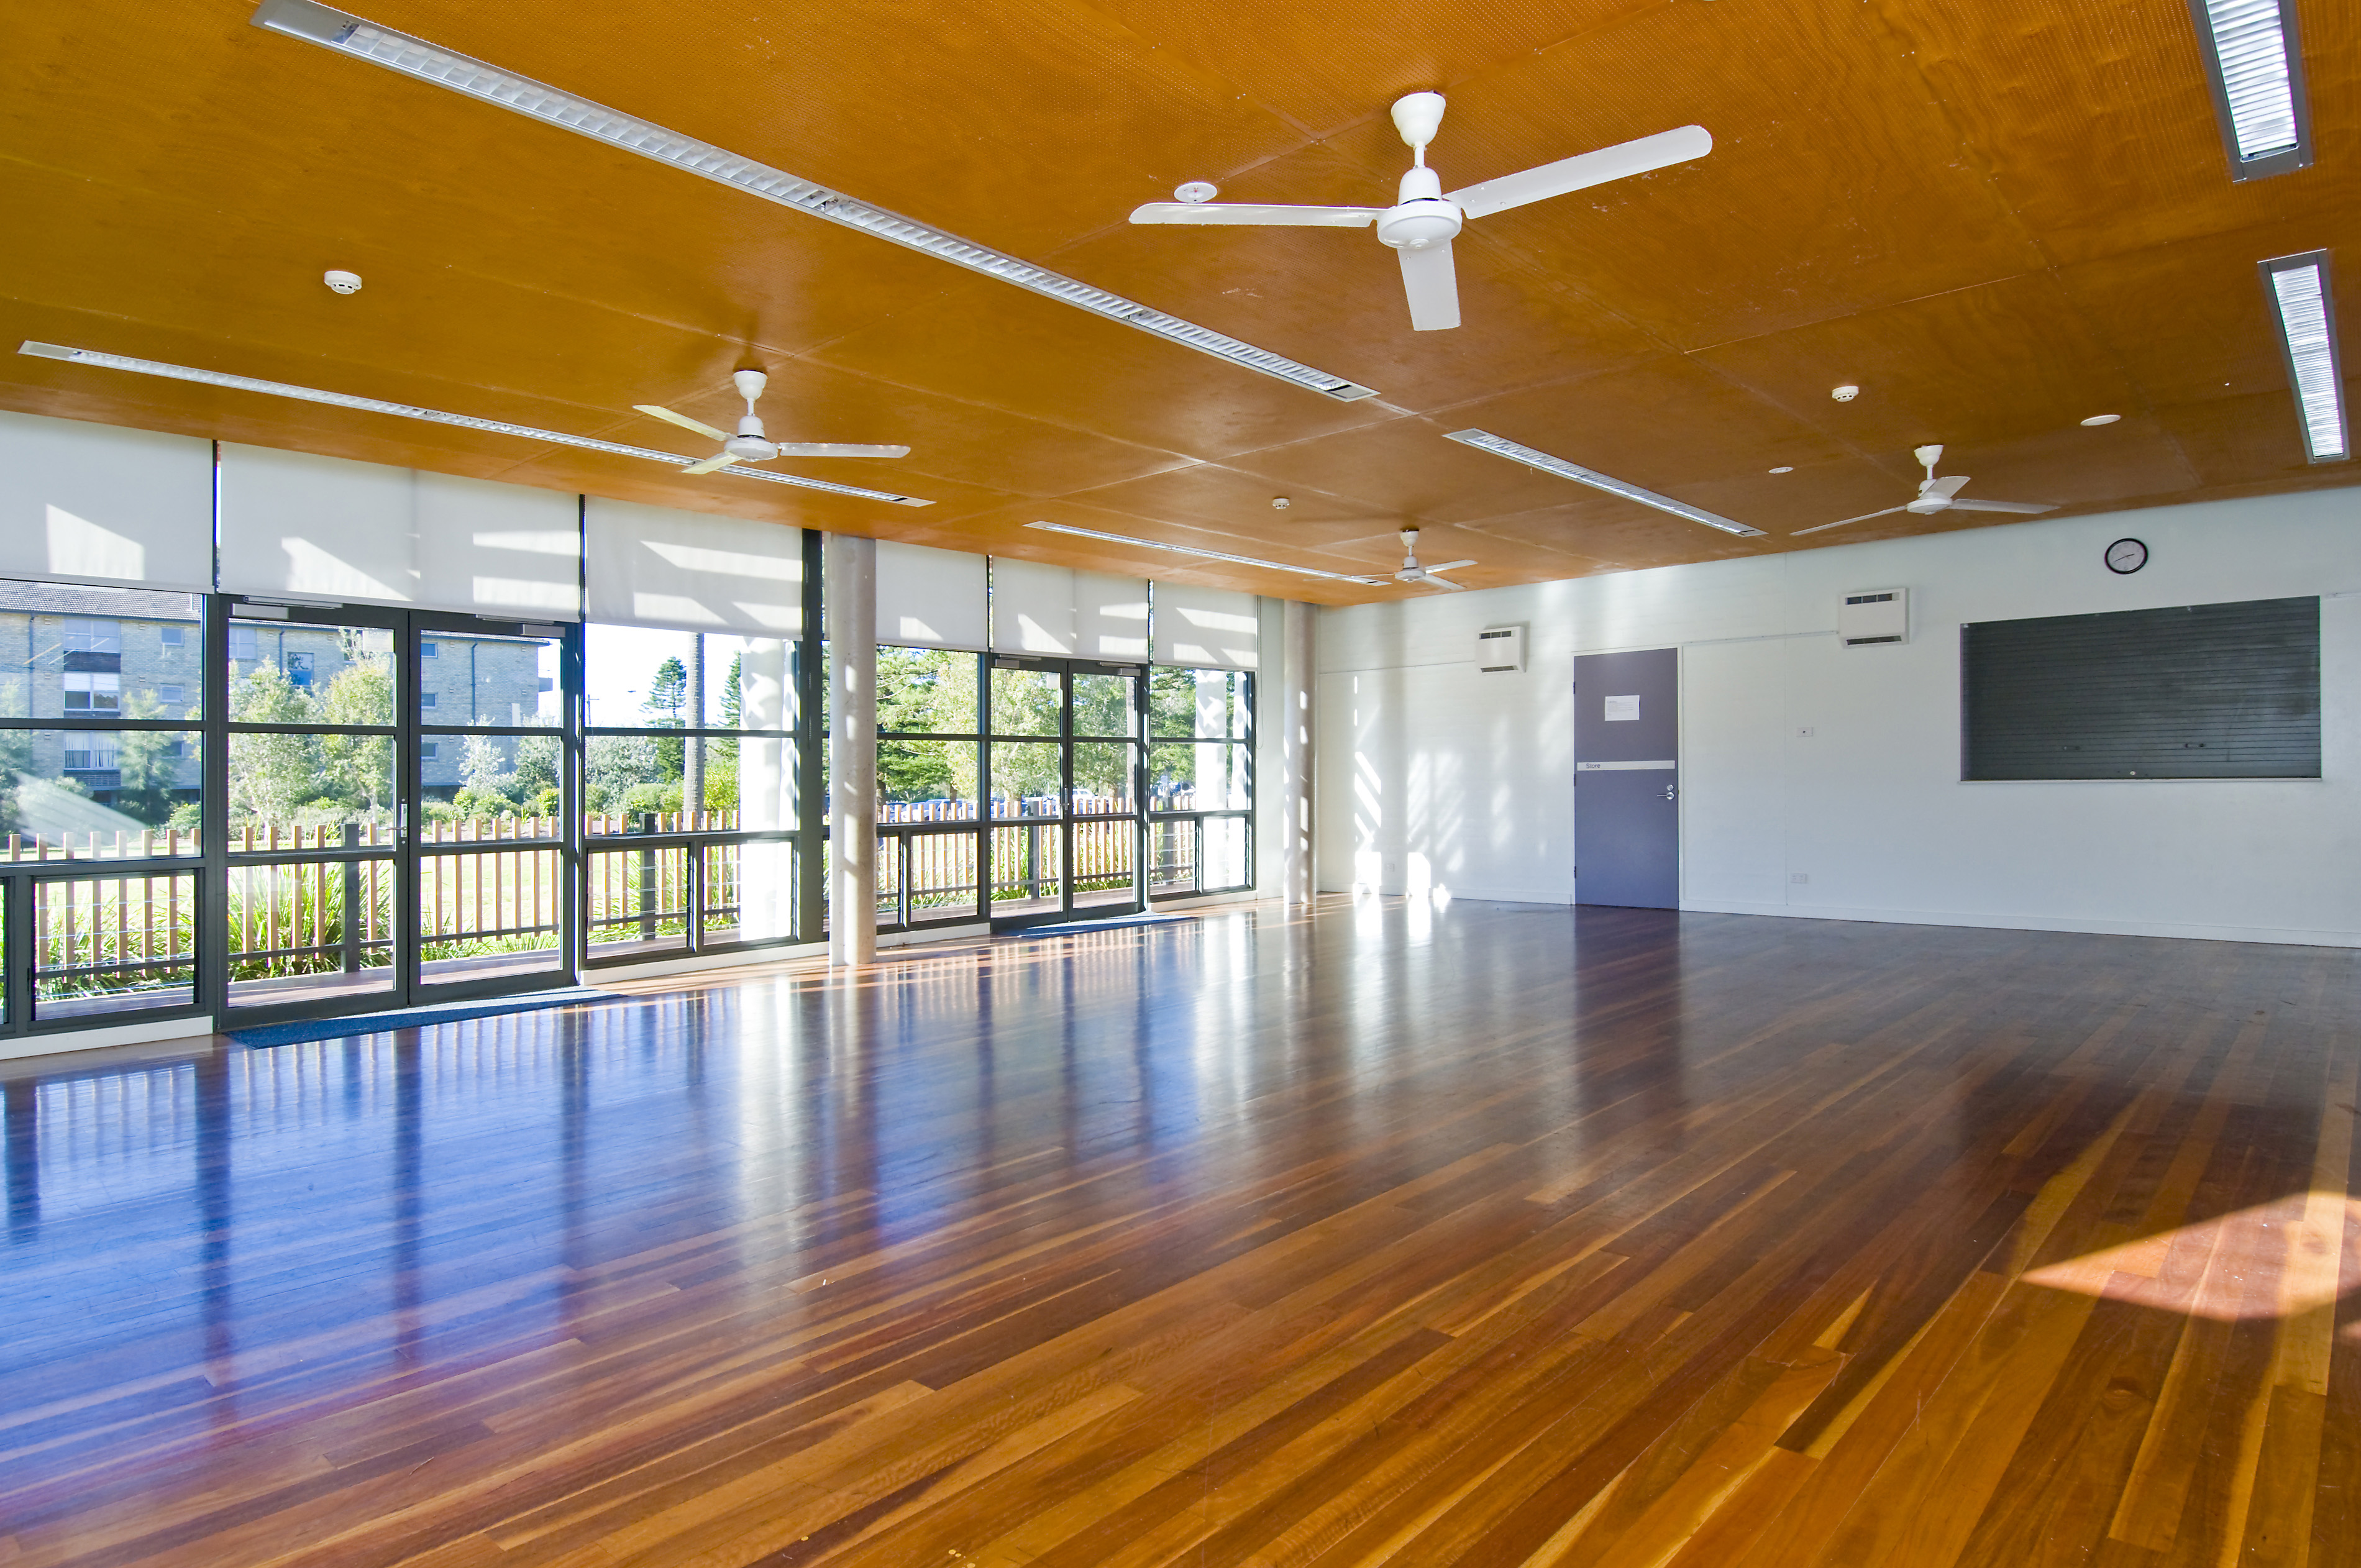 Activity room 2 northern beaches council for Activity room